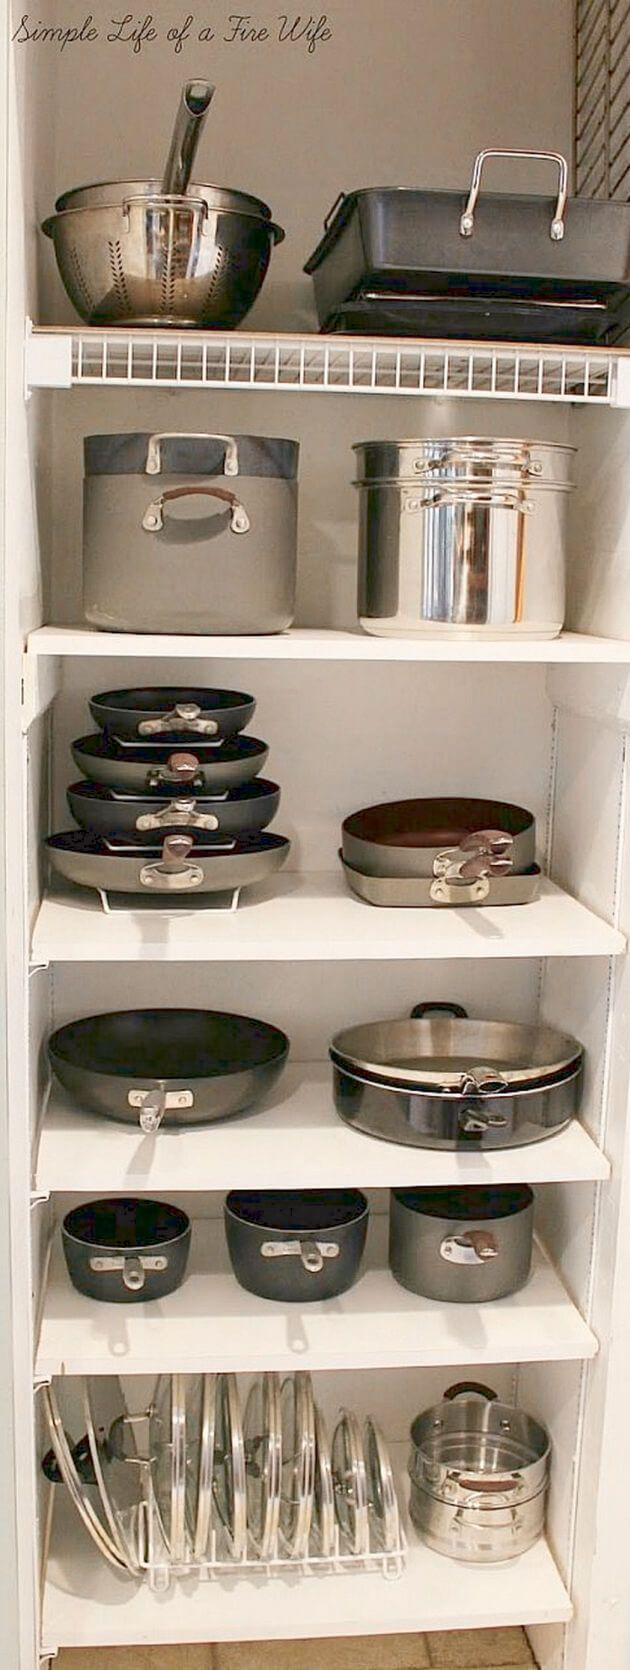 A Storage Cabinet for Pots and Pans